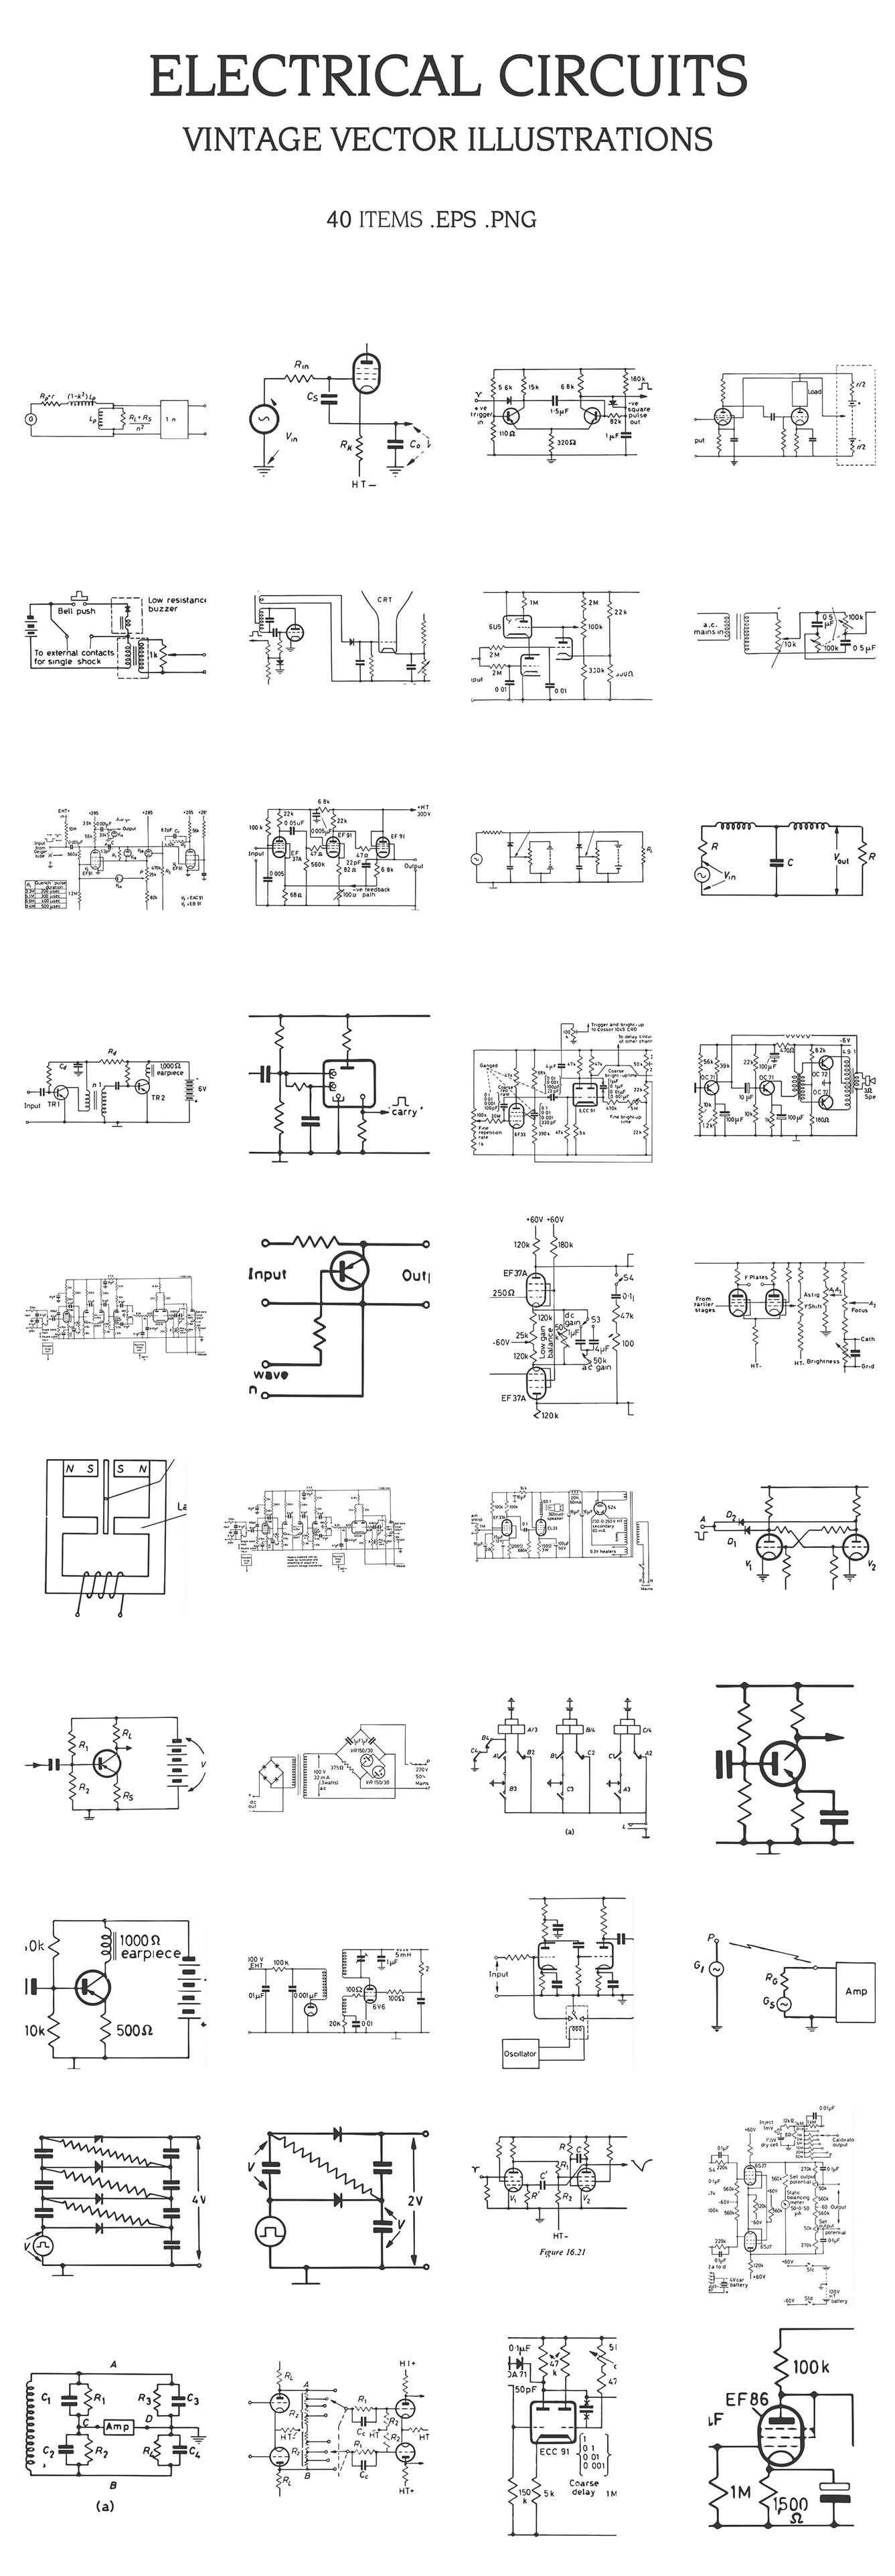 Vintage Vector Illustrations Bundle [Multiple Categories, 1391 Items] - electrical circuits